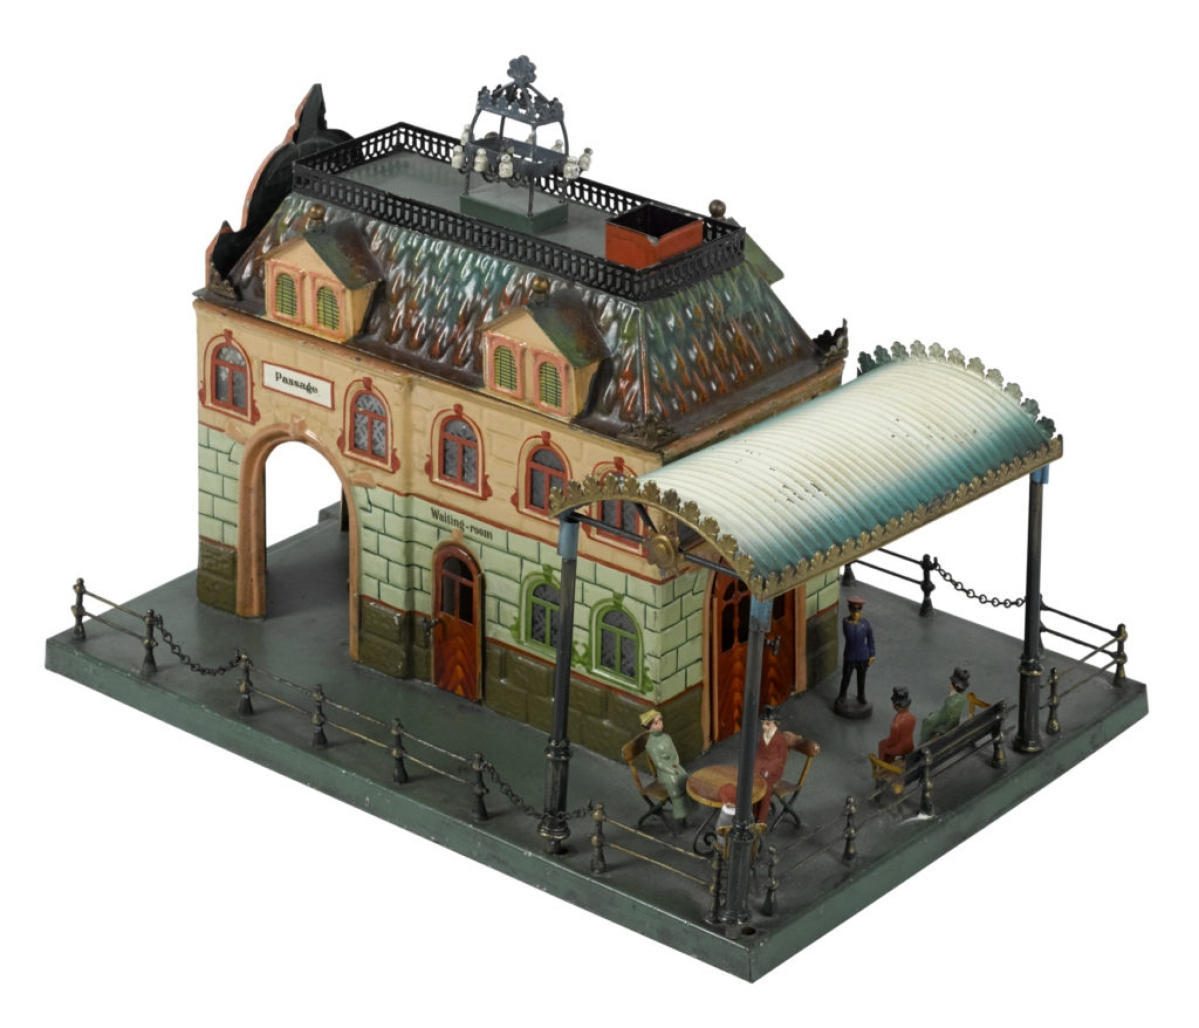 Selling at the high estimate, $18,000, was this Marklin Central-Bahnhof Train Station, no. 2651, hand painted with candlelit interior with tables, chairs and benches. It has etched and stained glass windows and features an outdoor café under an arched canopy. It was last sold on May 21, 2011, at a Noel Barrett auction.